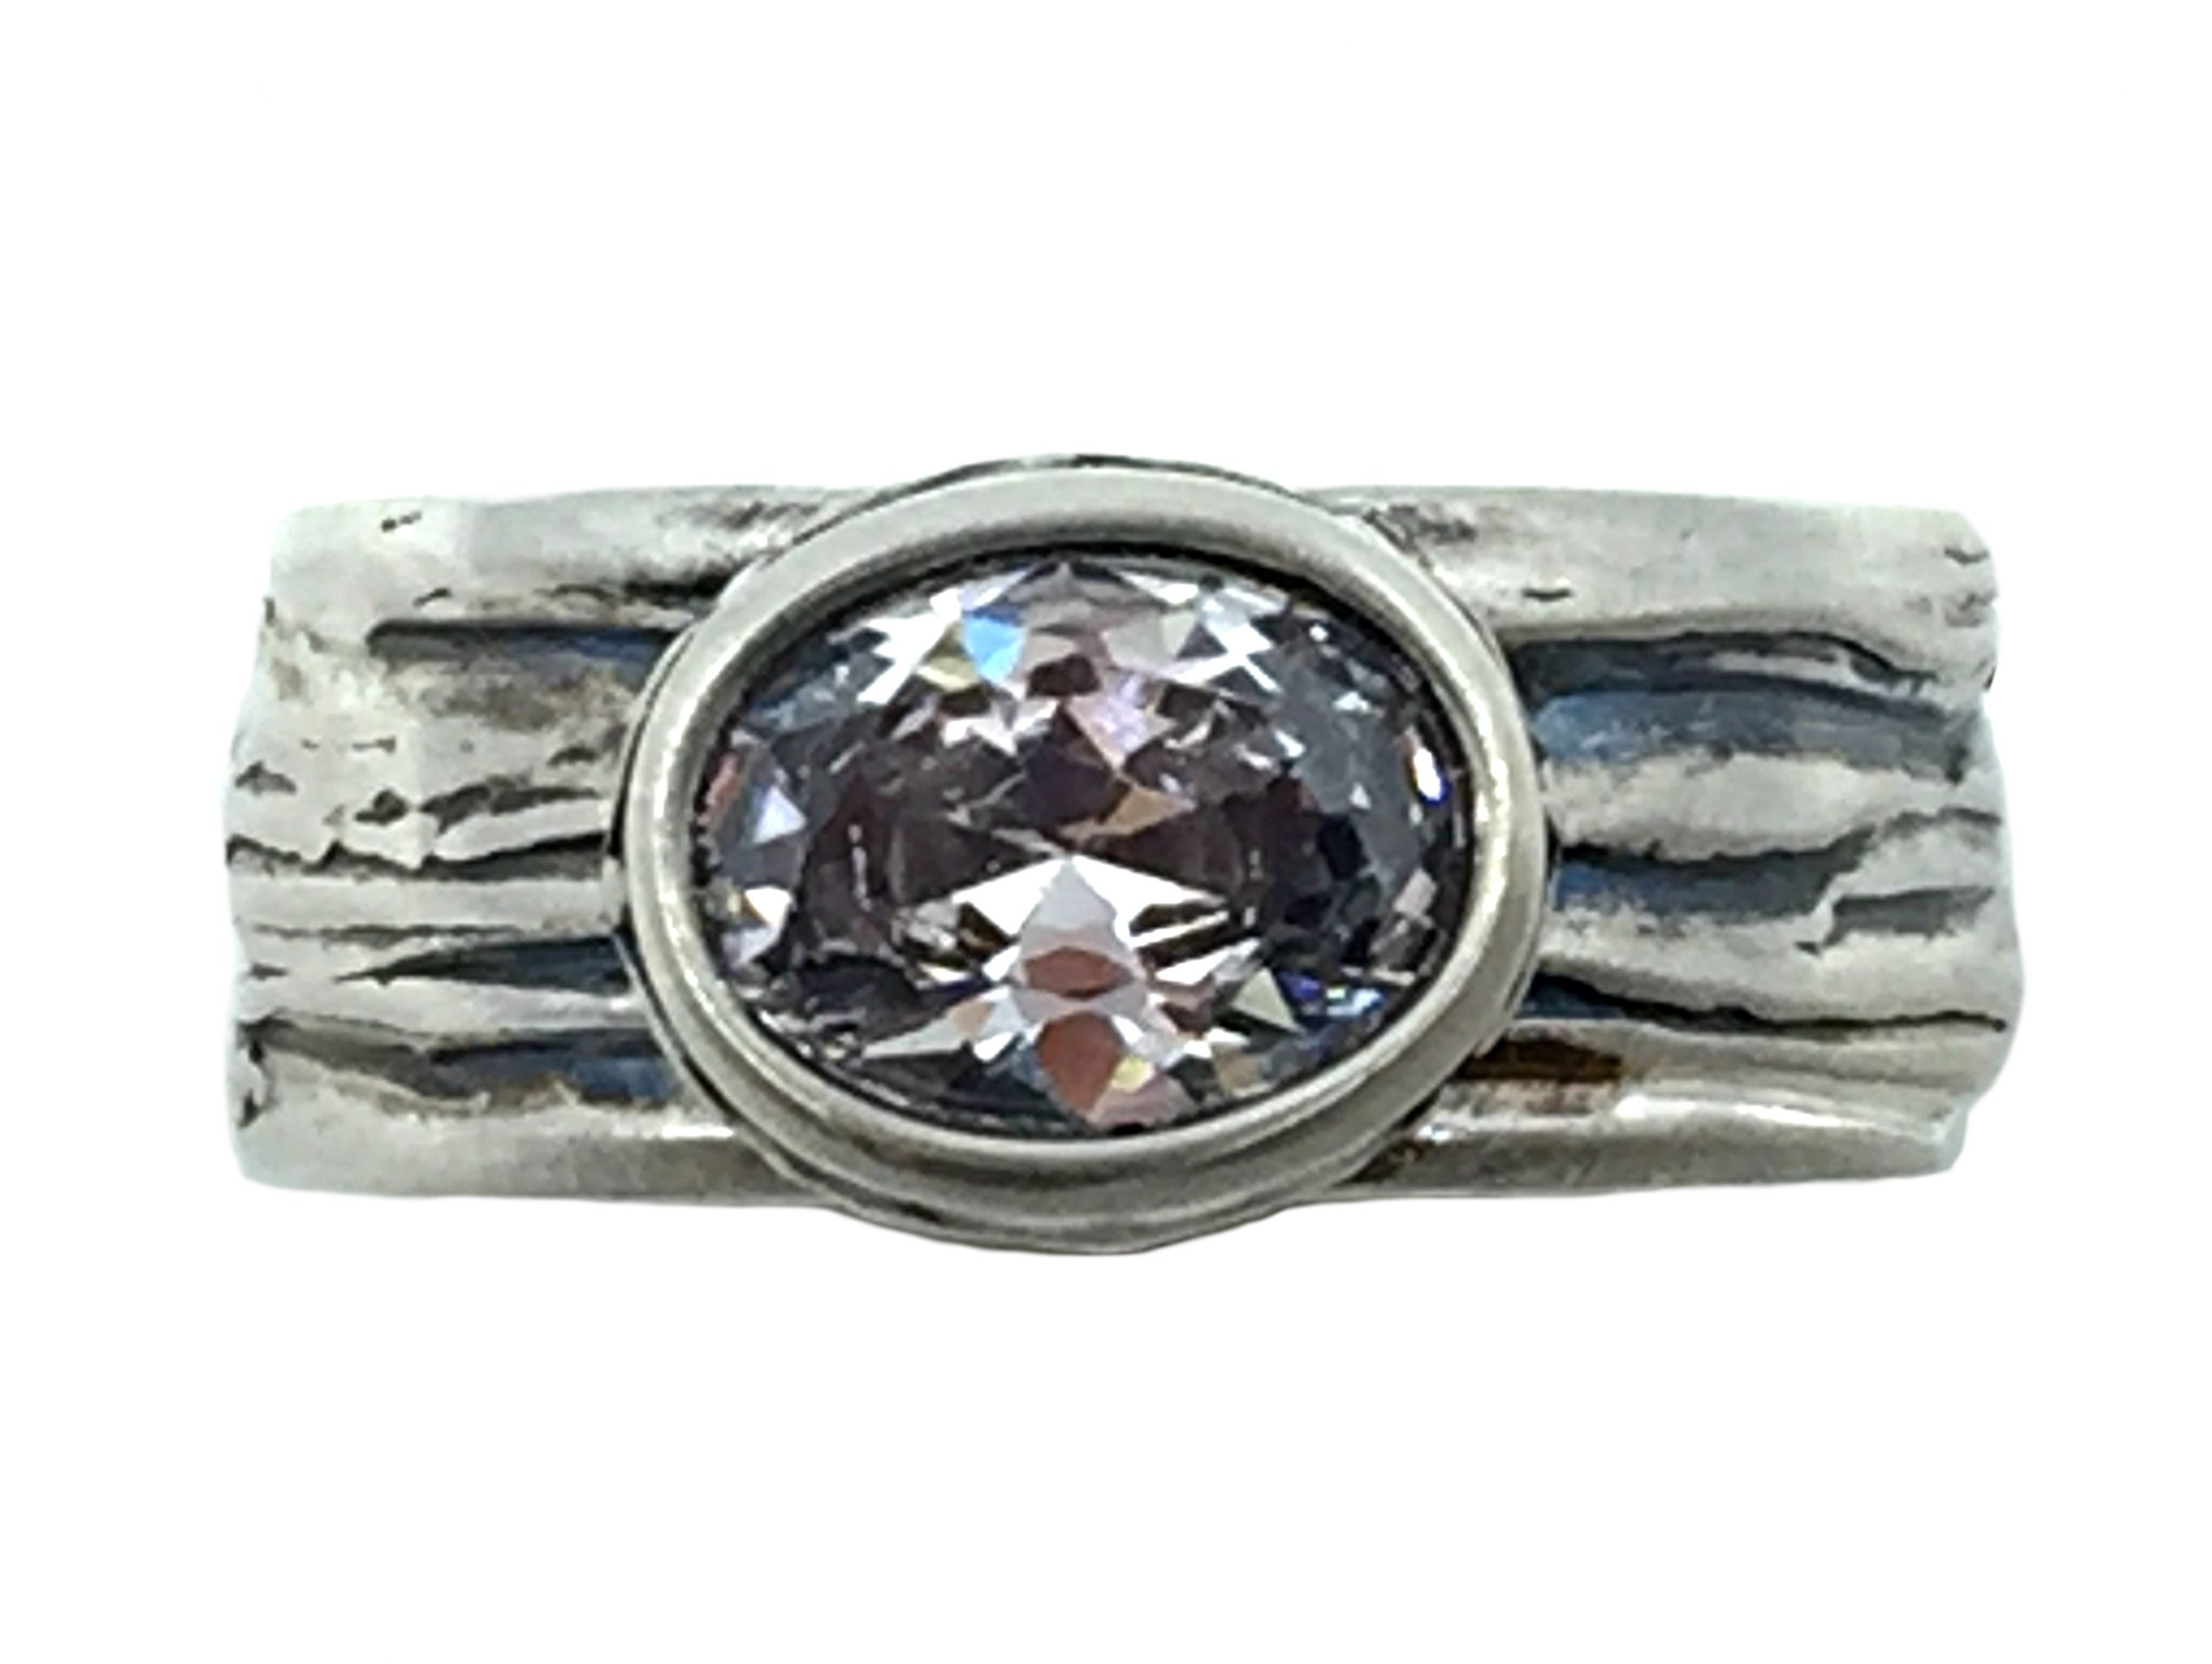 Sterling silver and CZ Karyn Chopik ring   Effusion Art Gallery + Cast Glass Studio, Invermere BC